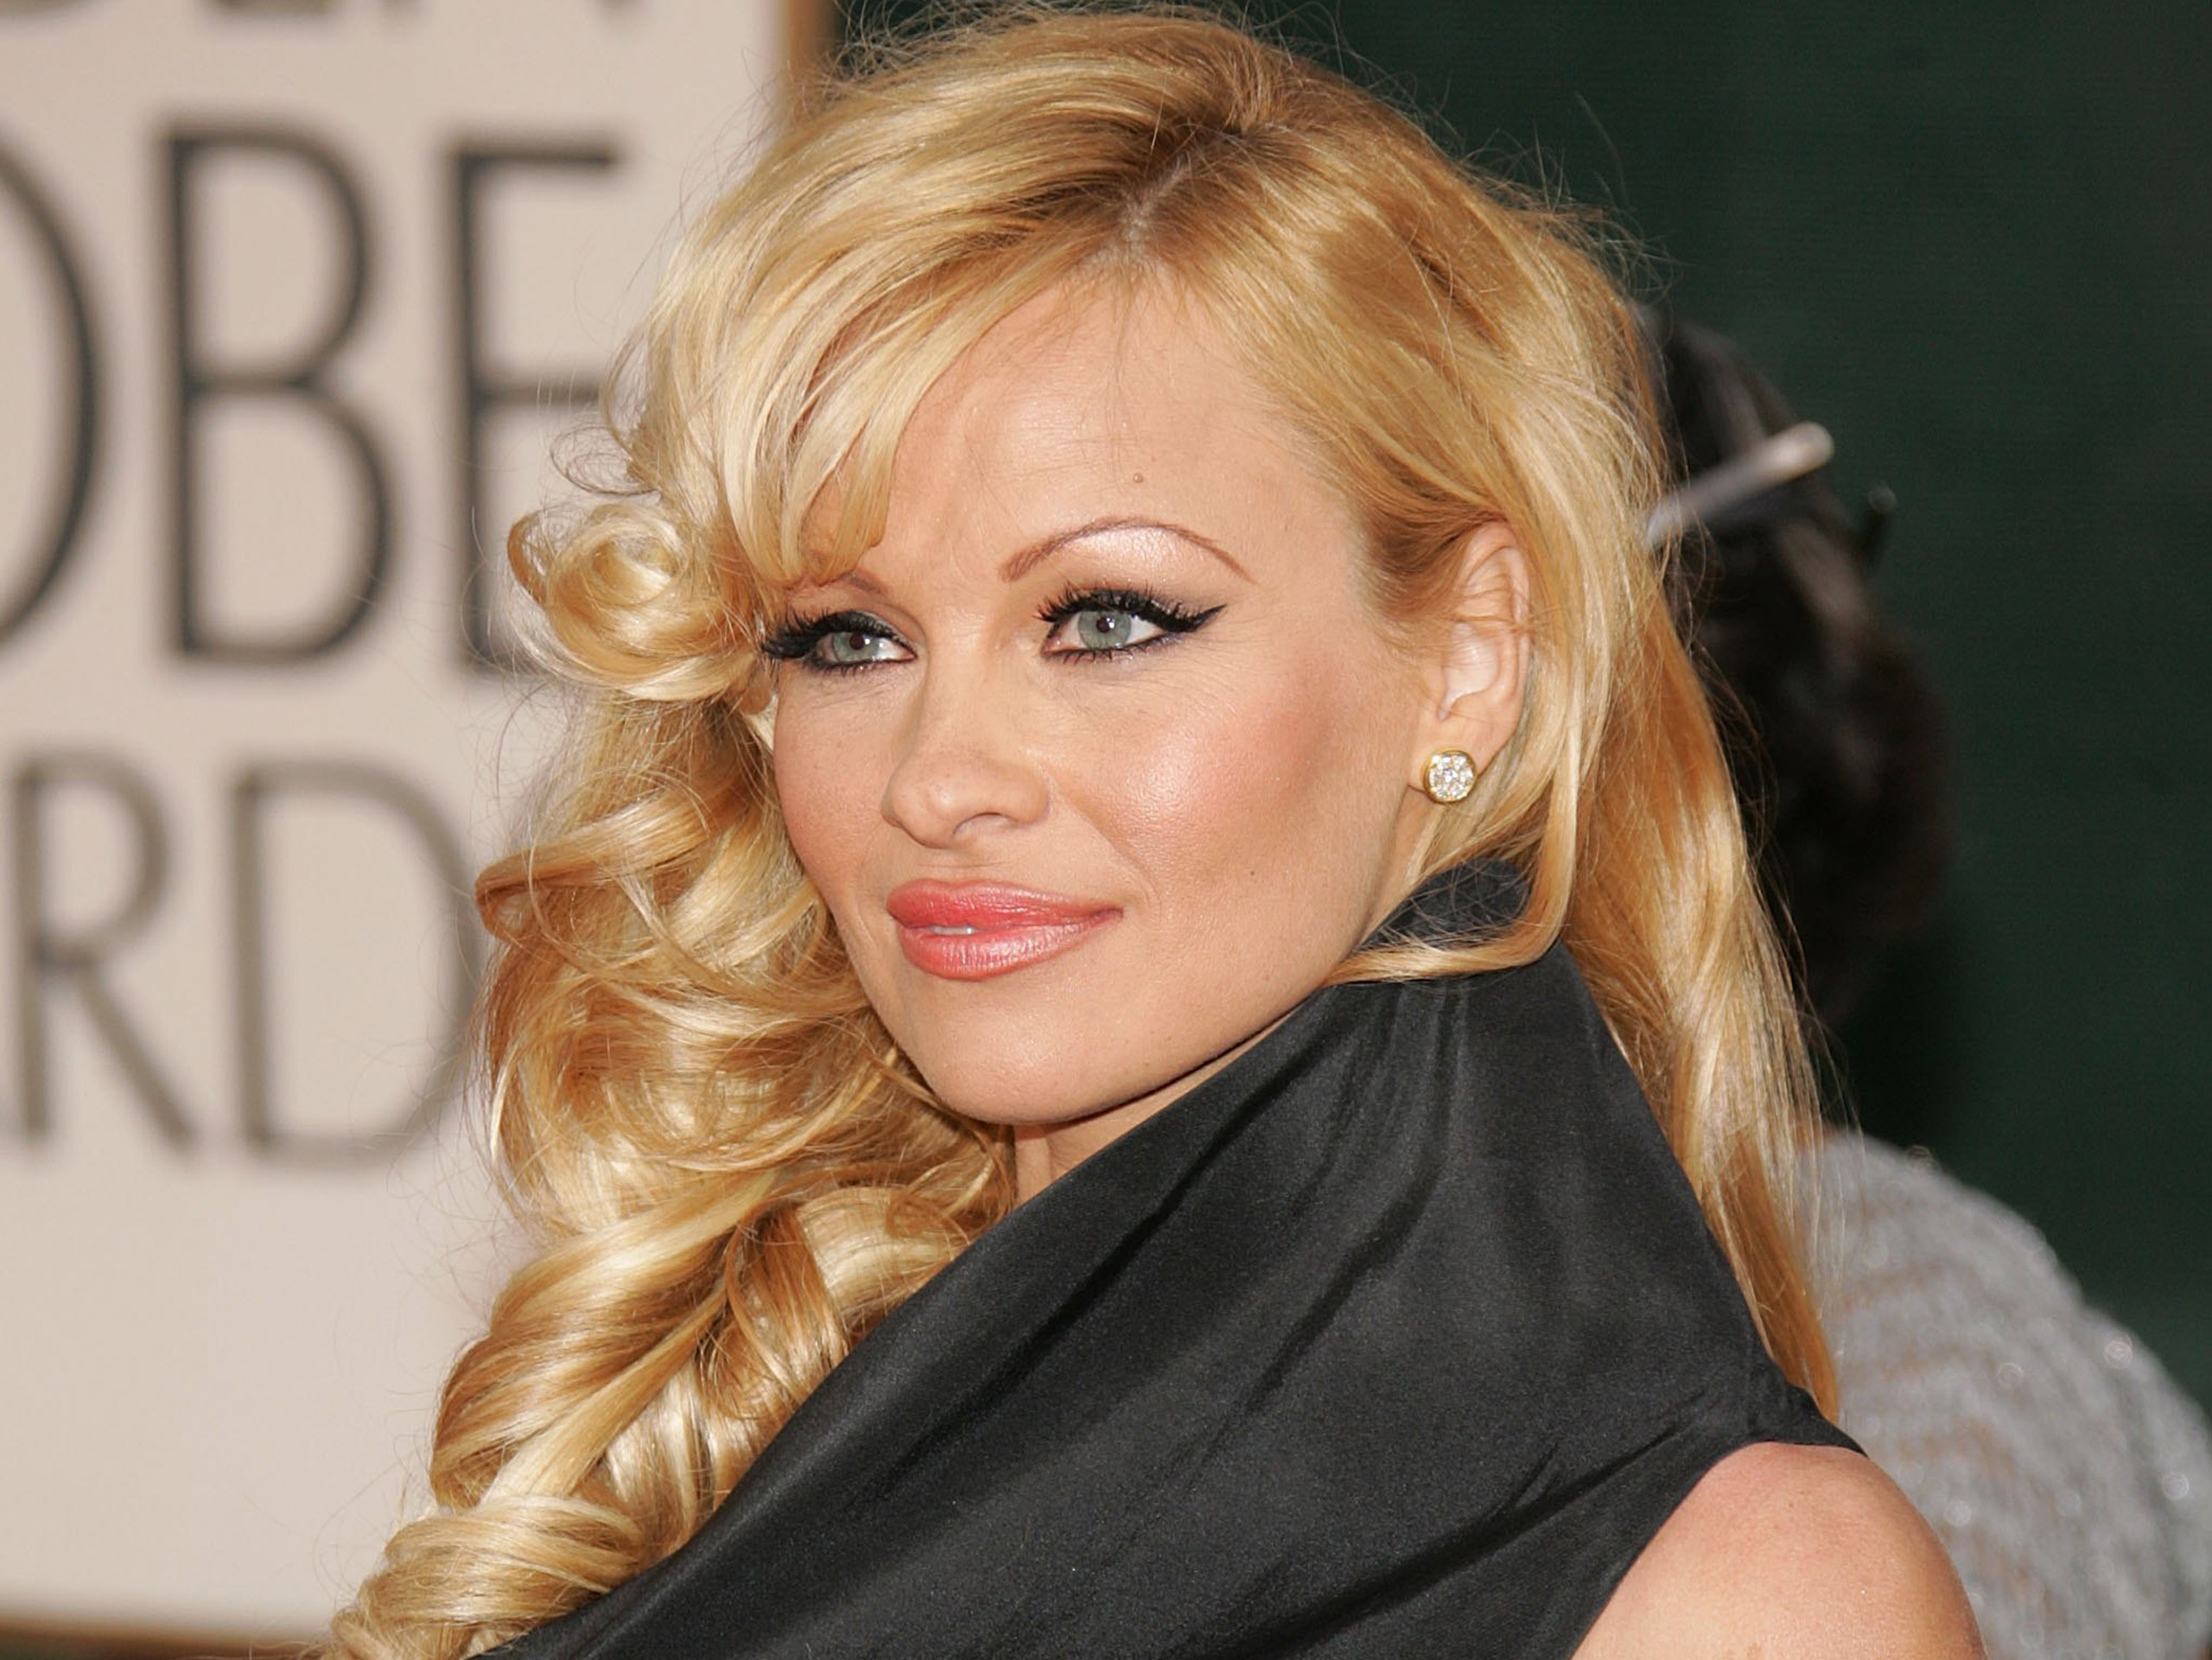 Pamela anderson nude pics pic 17